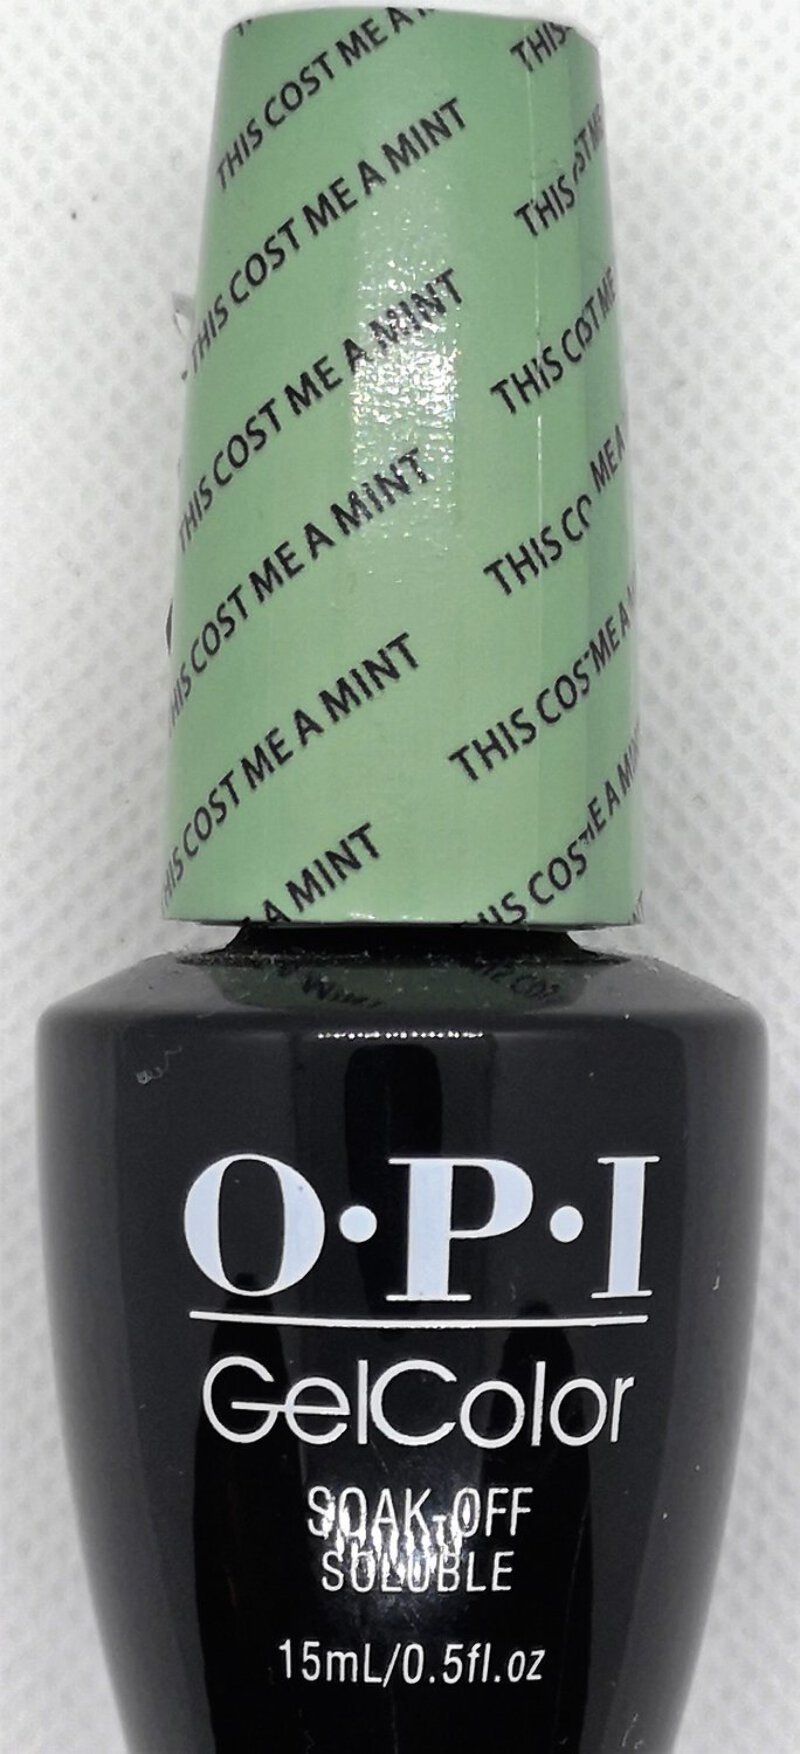 Details about This Cost Me a Mint | OPI GelColor UV LED Nail Polish